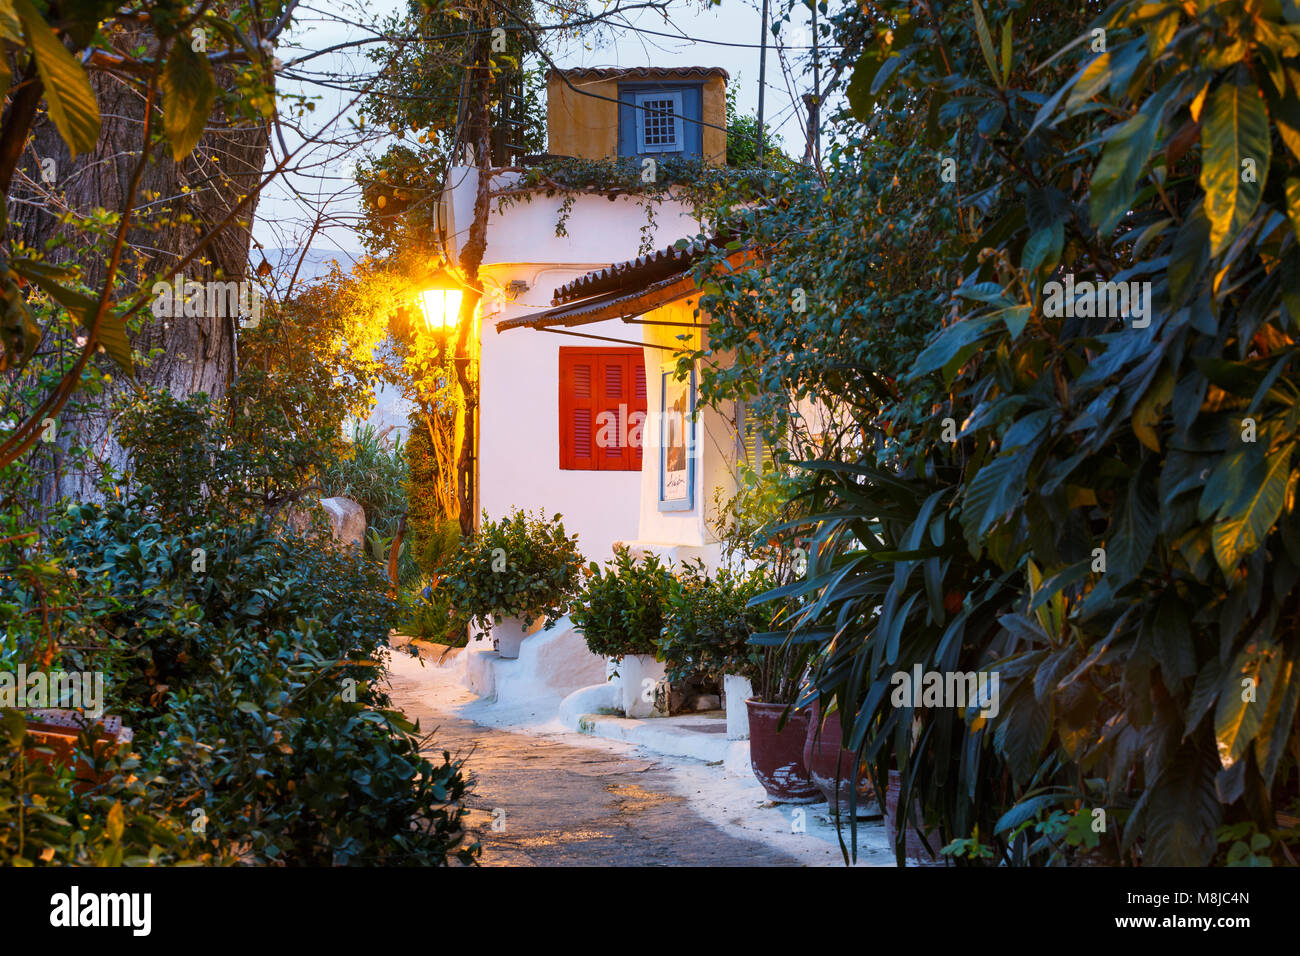 Anafiotika neighborhood in the old town of Athens, Greece. - Stock Image